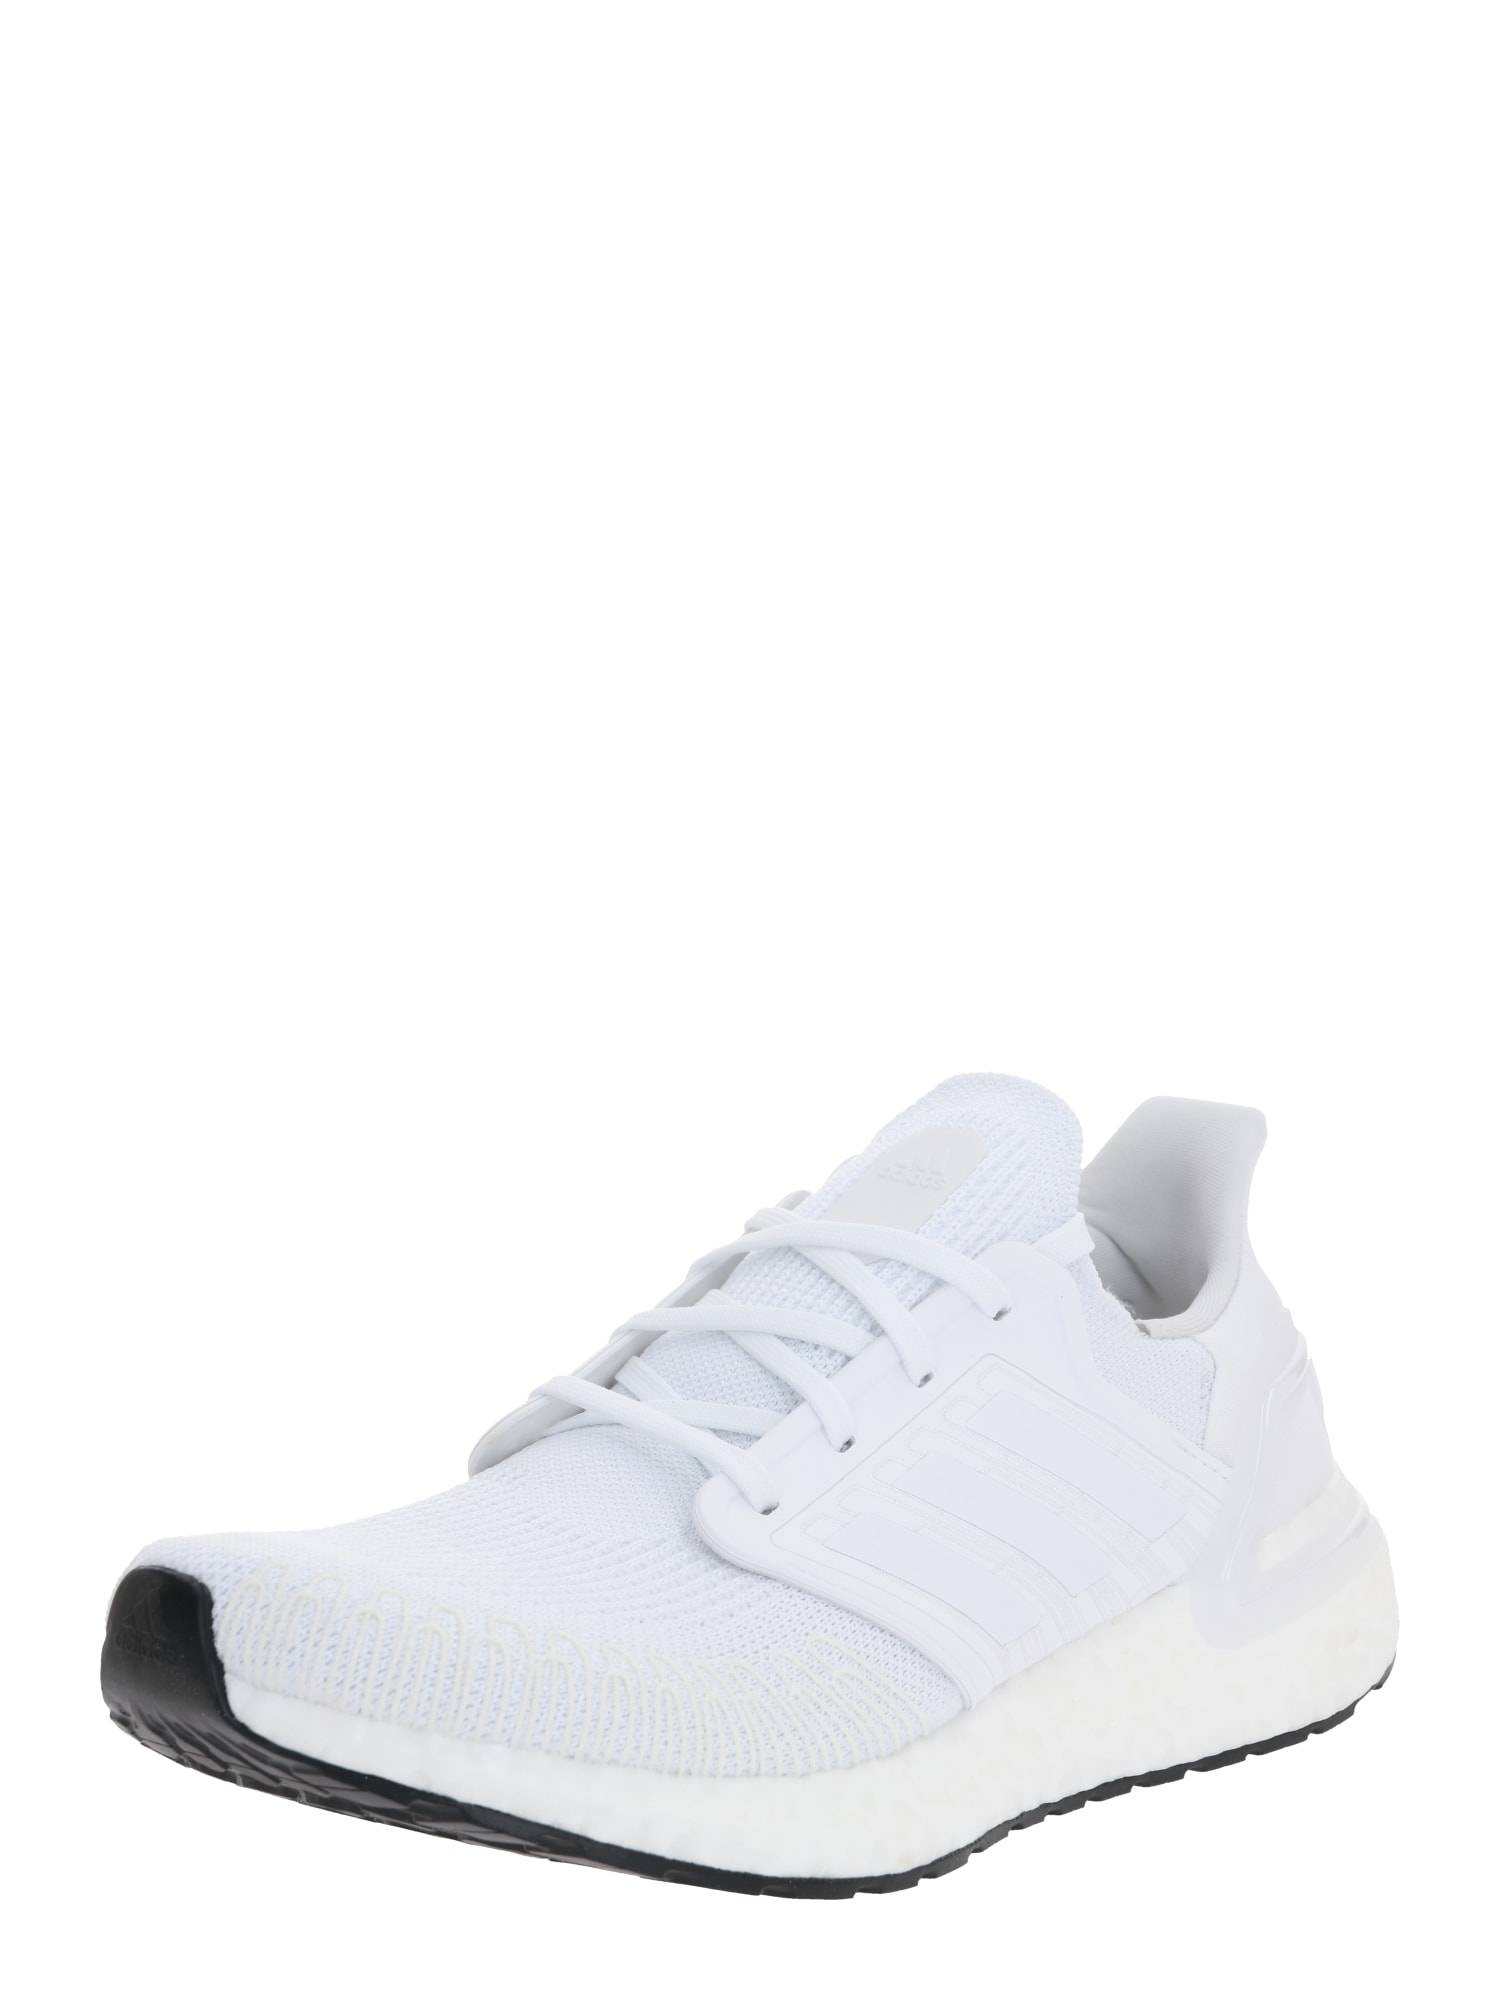 ADIDAS PERFORMANCE Chaussure de course 'Ultraboost 20'  - Blanc - Taille: 42 - male